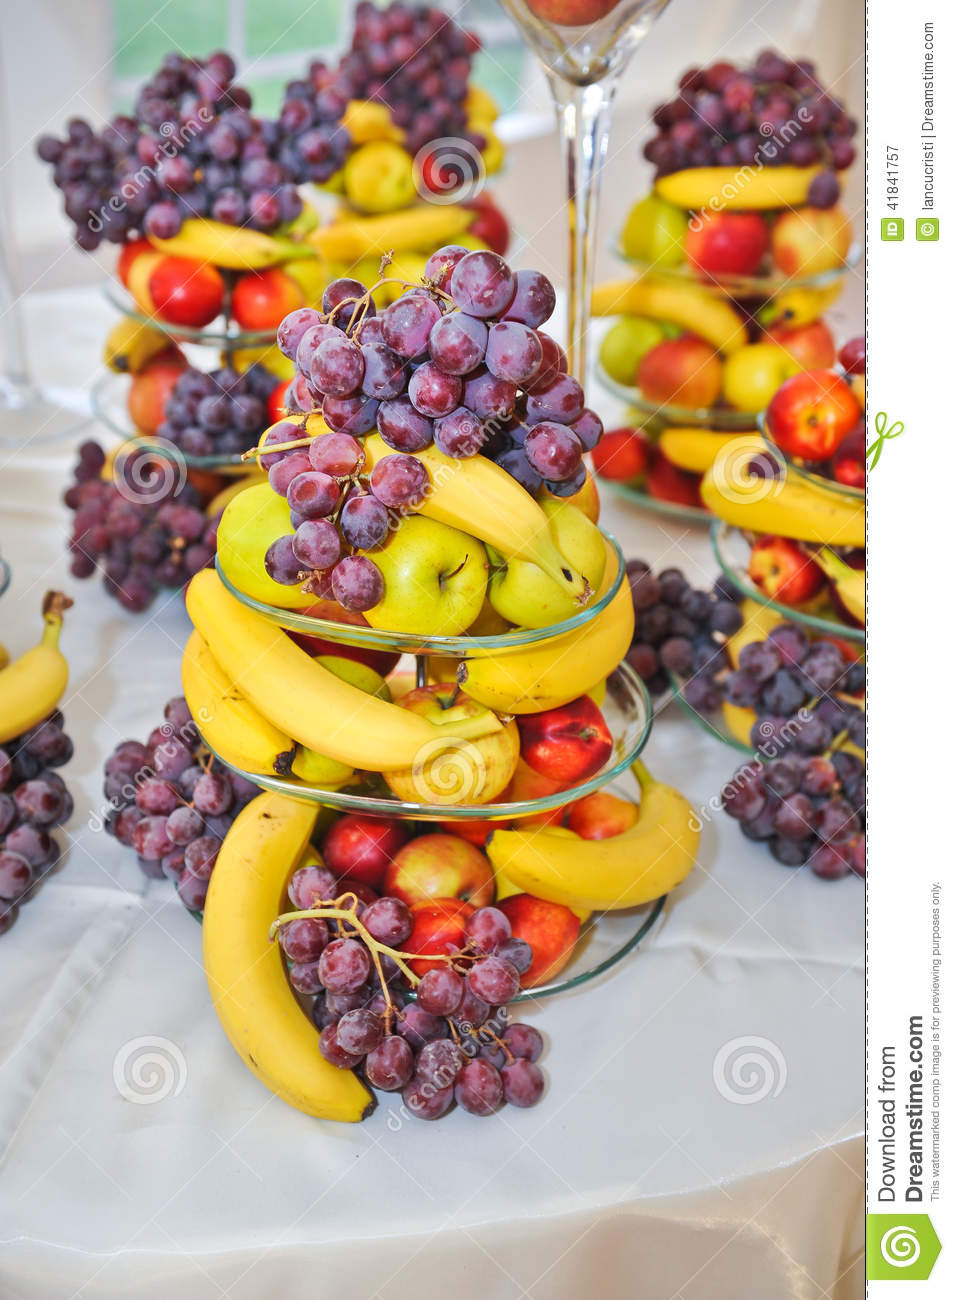 wedding decoration with fruits bananas grapes and apples stock image image of assortment. Black Bedroom Furniture Sets. Home Design Ideas